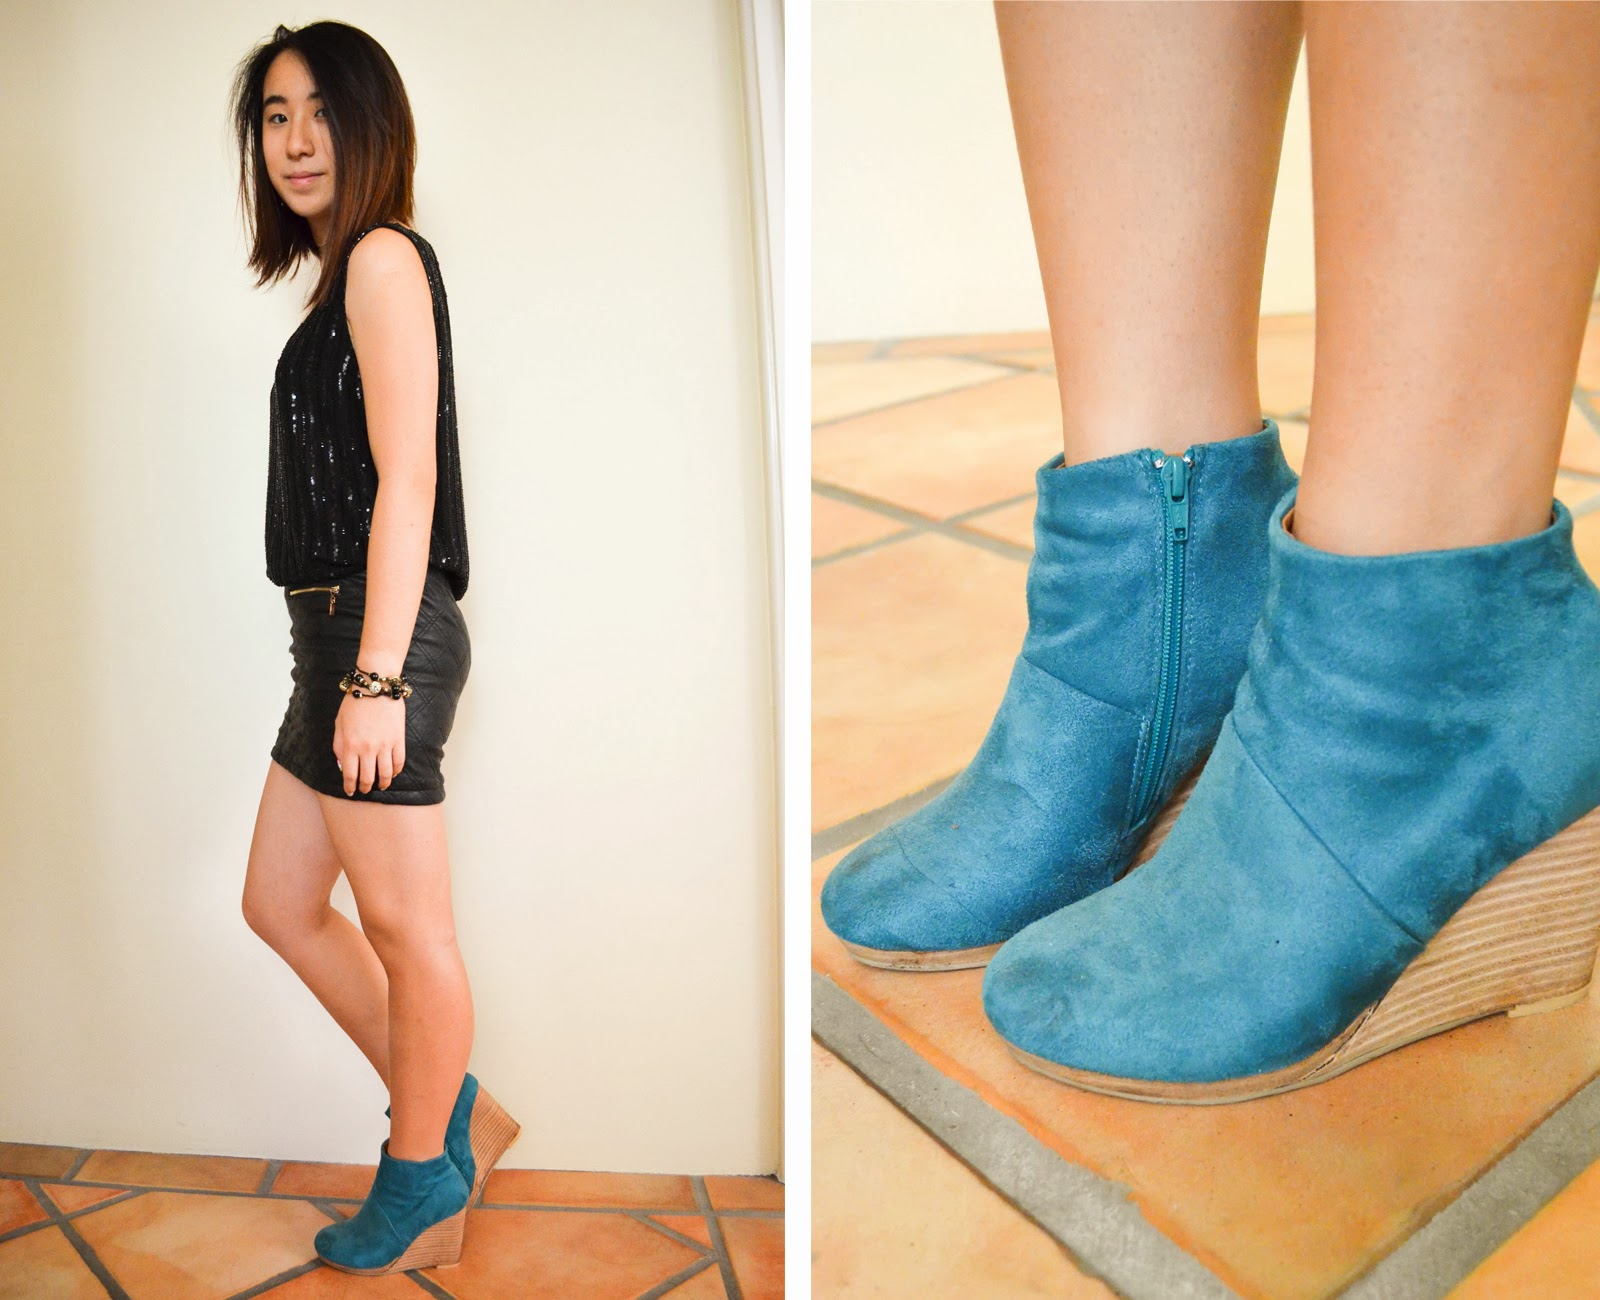 black punk rock grunge leather sequin gold blue boots wedges boot shoes turquoise inspiration outfit look